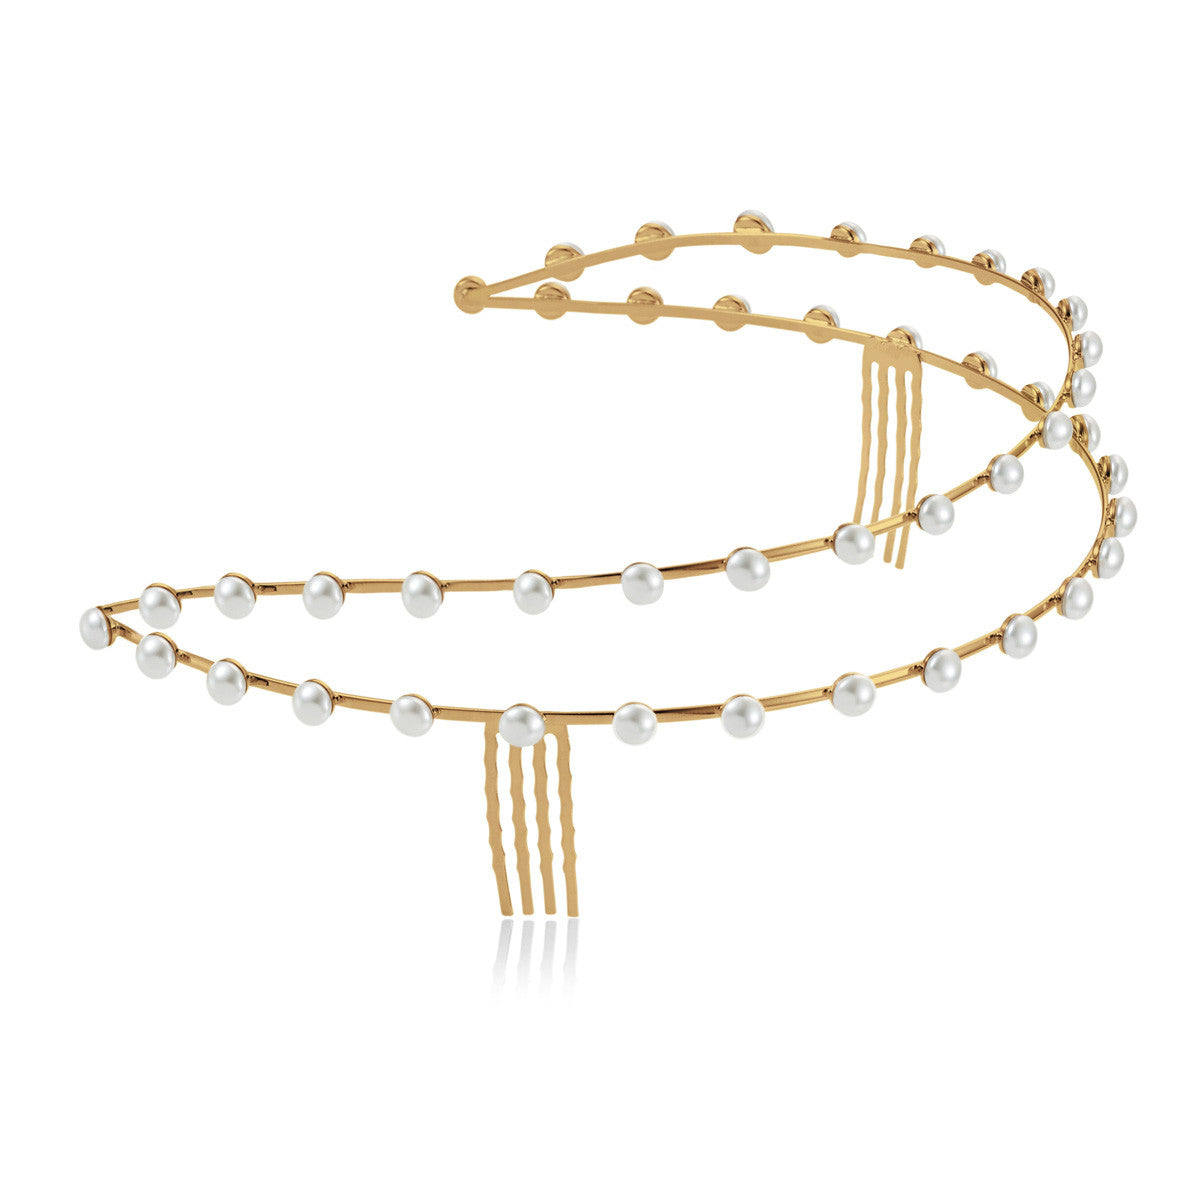 Solid brass, 18K gold plated crown with Swarovski® pearls - side